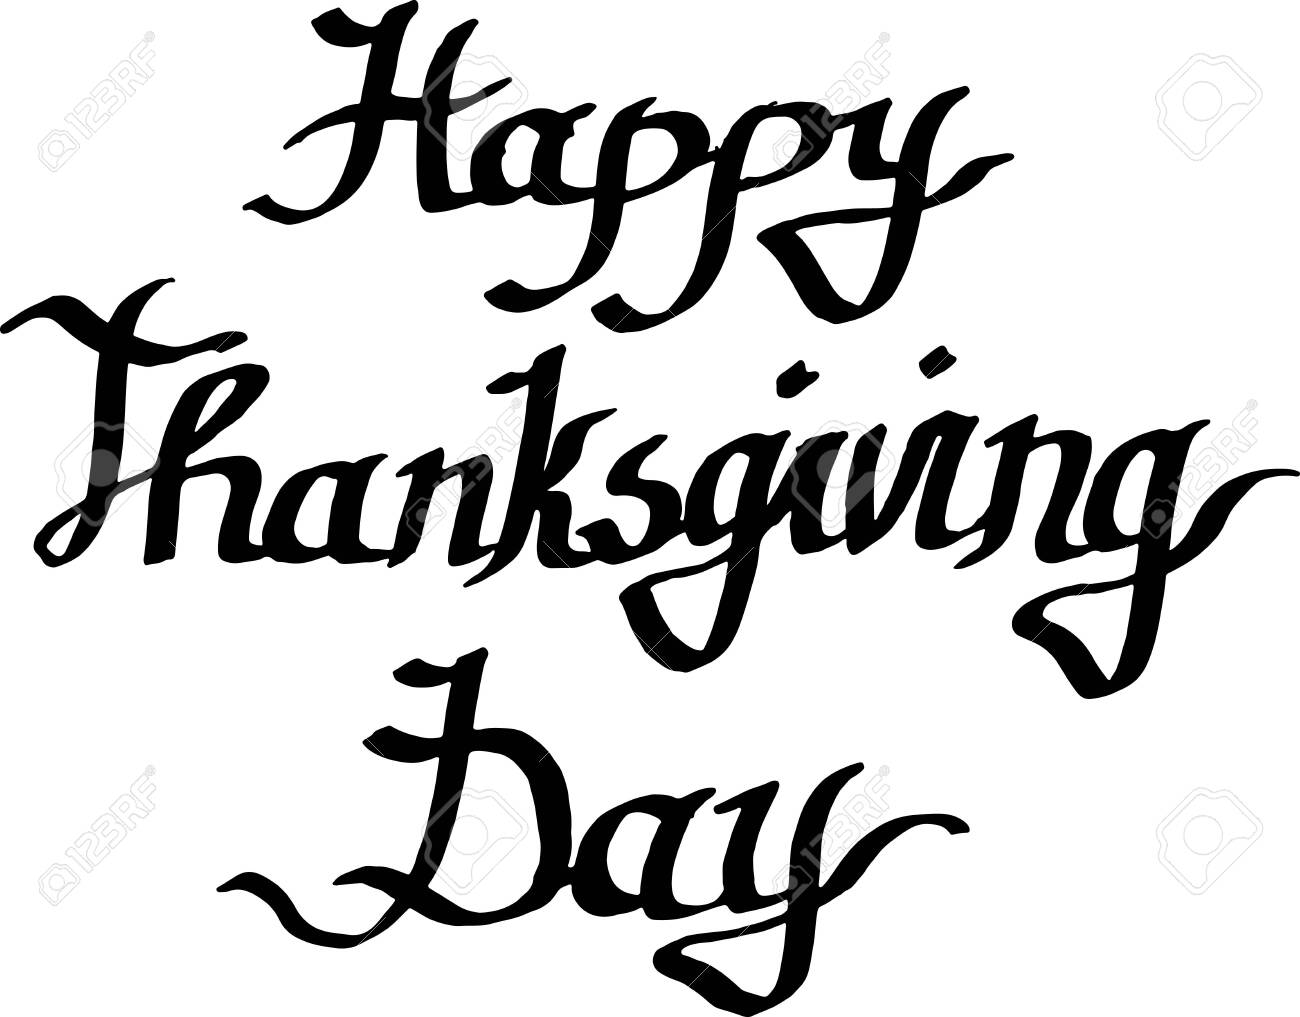 Vector Happy thanksgiving day handwriting monogram calligraphy. Black and white engraved ink art isolated. - 131240387